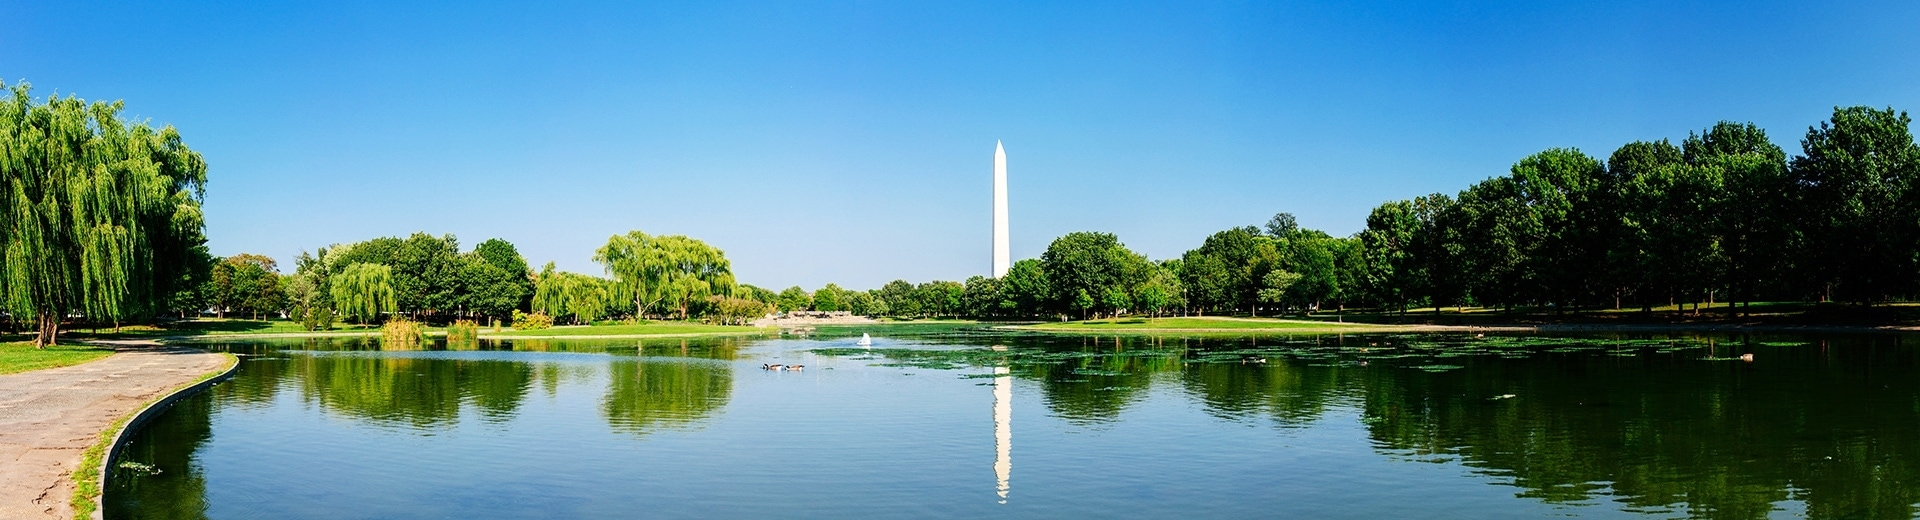 12 Key Factors To Consider Before Living in Washington DC